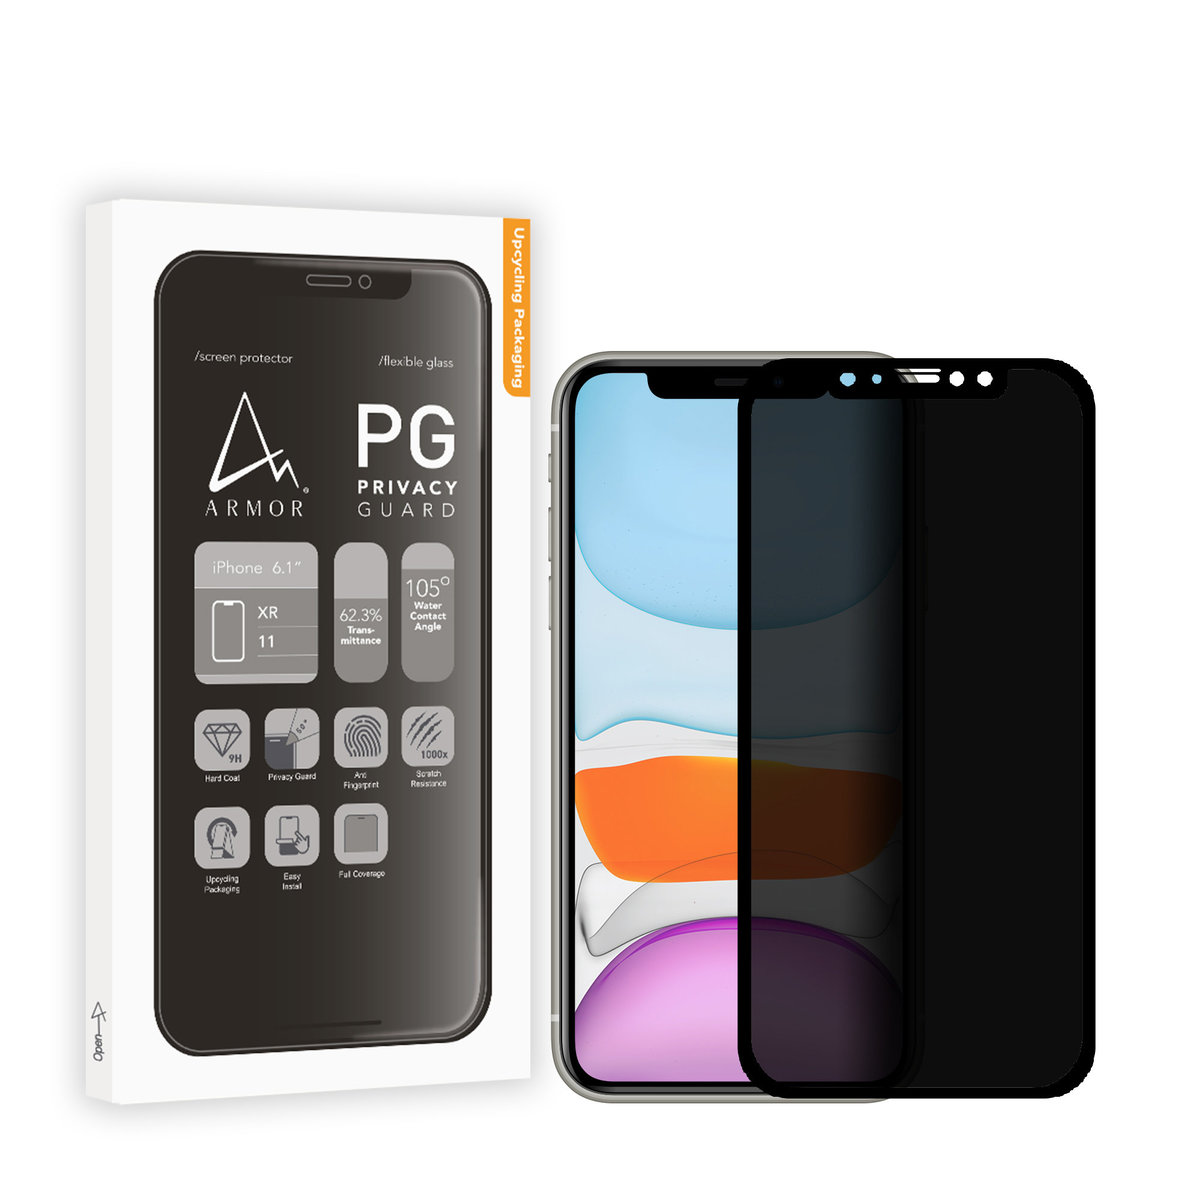 Flexible Glass Screen Protector_Full Coverage_9H with Privacy Guard for iPhone 11 / XR